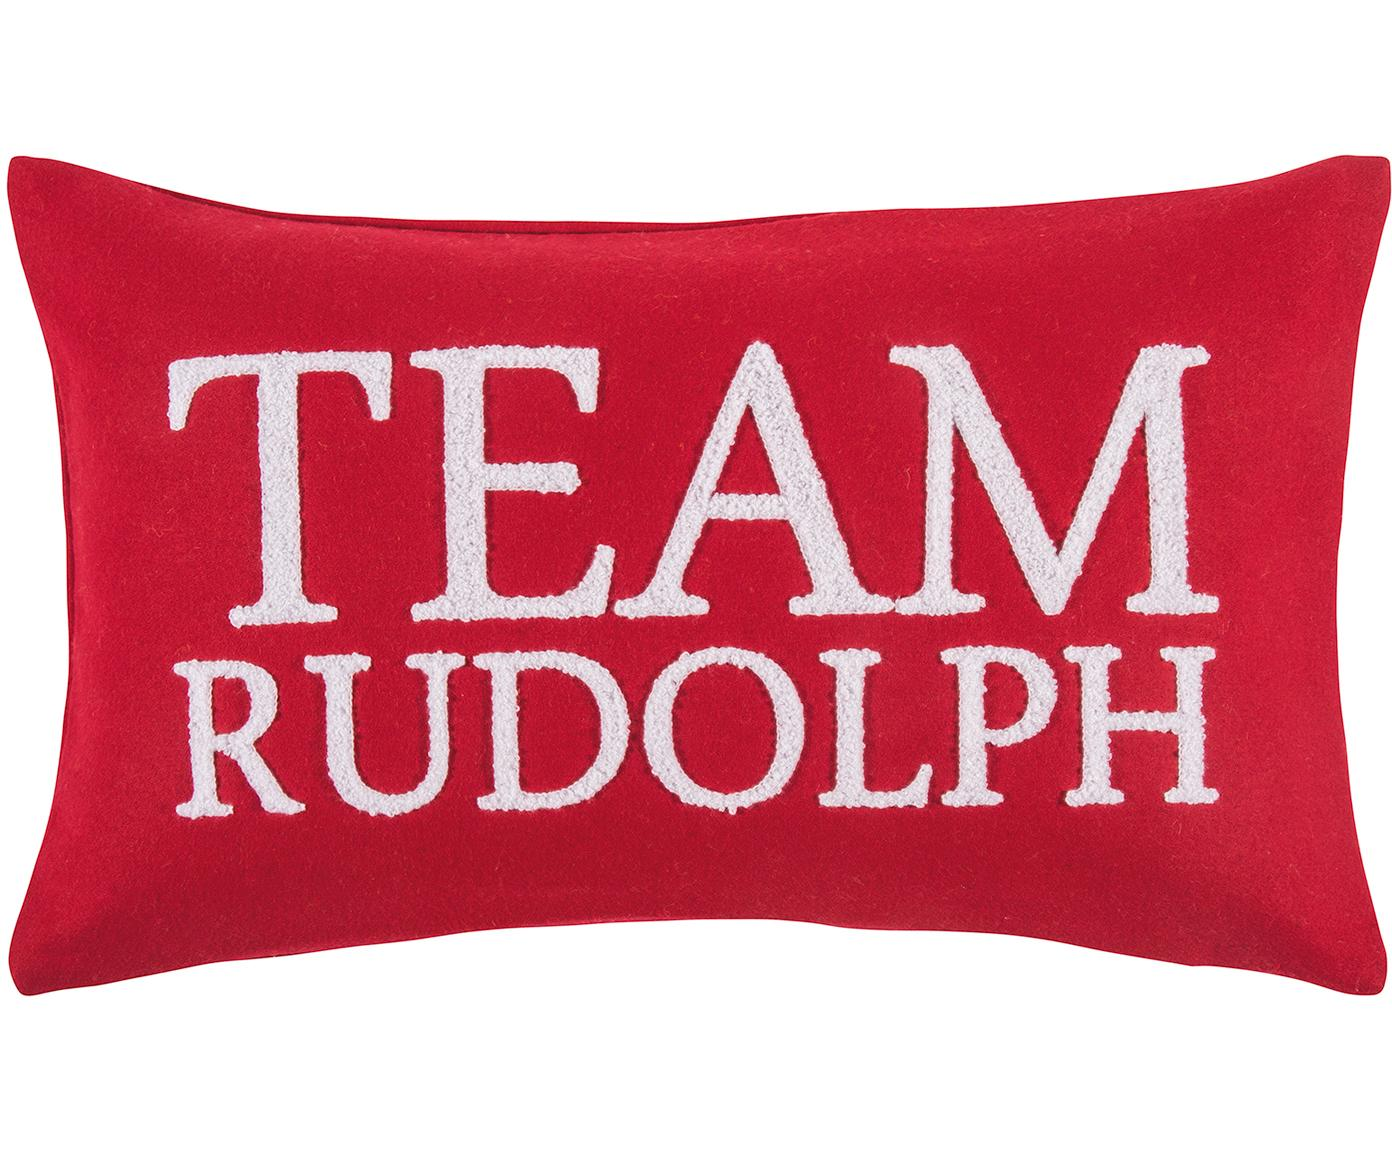 Kussenhoes Rudolph met reliëfopschrift, 60% wol, 40% polyester, Rood, wit, 30 x 50 cm